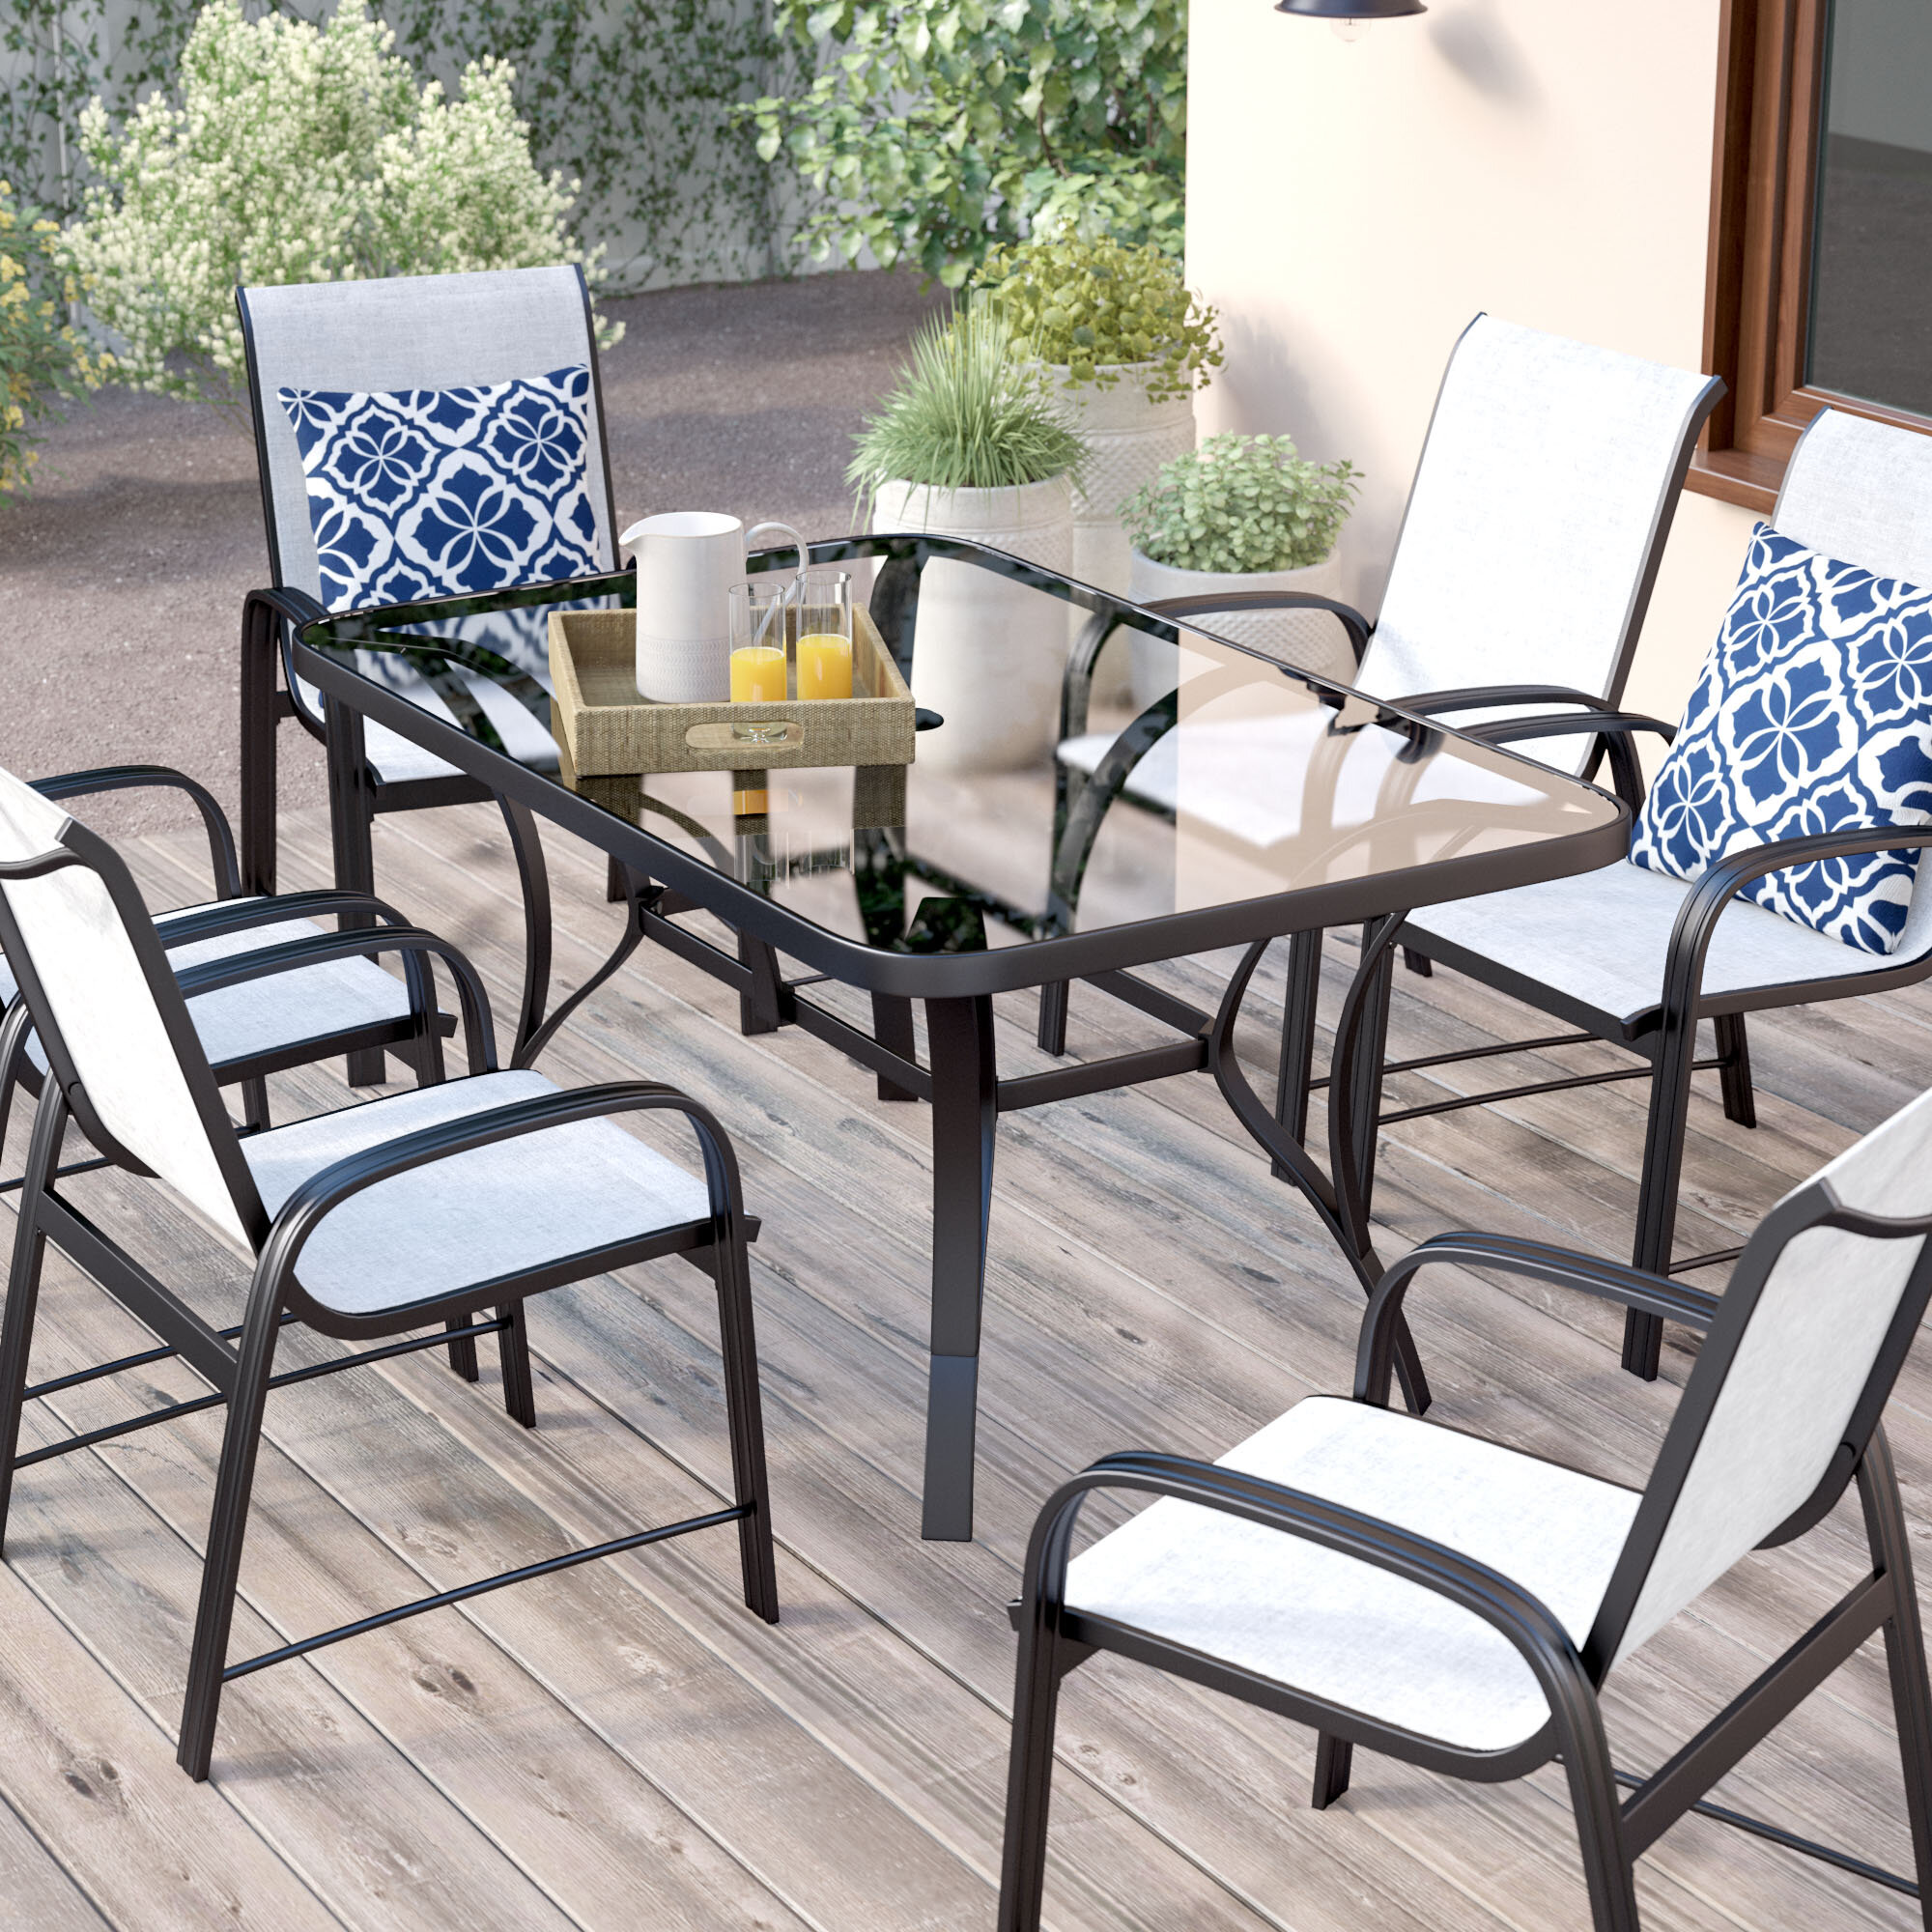 with person stationary cast the amalia luxury patio chairs dining set collection aluminum big furniture